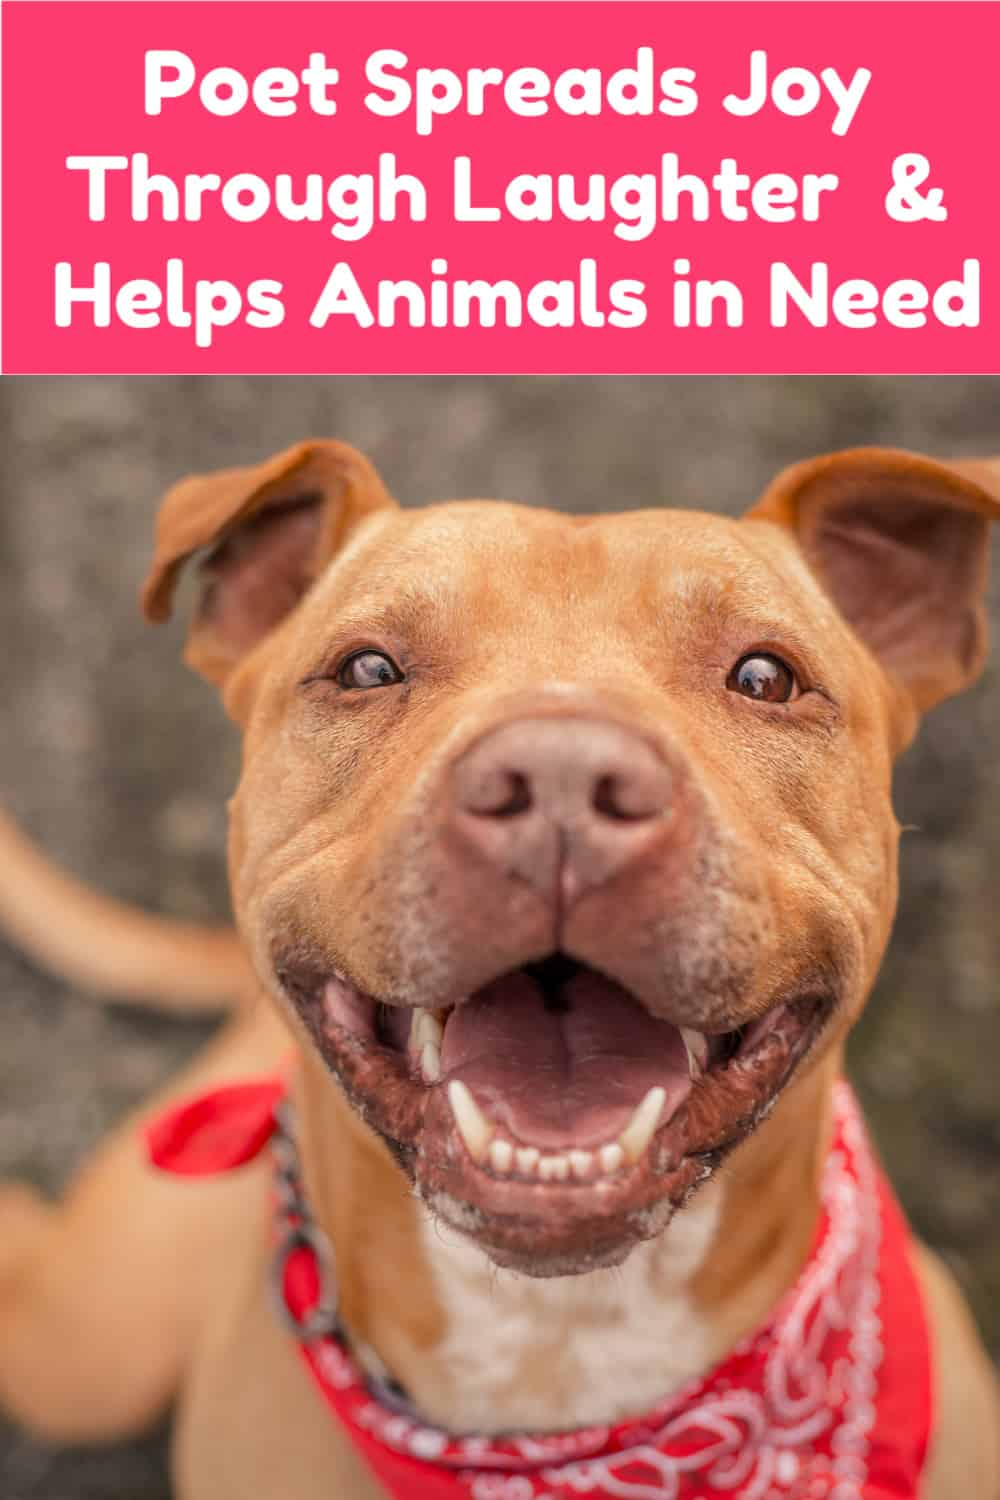 Poet and Certified Laughter Leader Jonathan Kump, who happens to live right here in my hometown, isn't just spreading joy though his fun poetry, he's also helping animals in need. Read on to learn more about how.